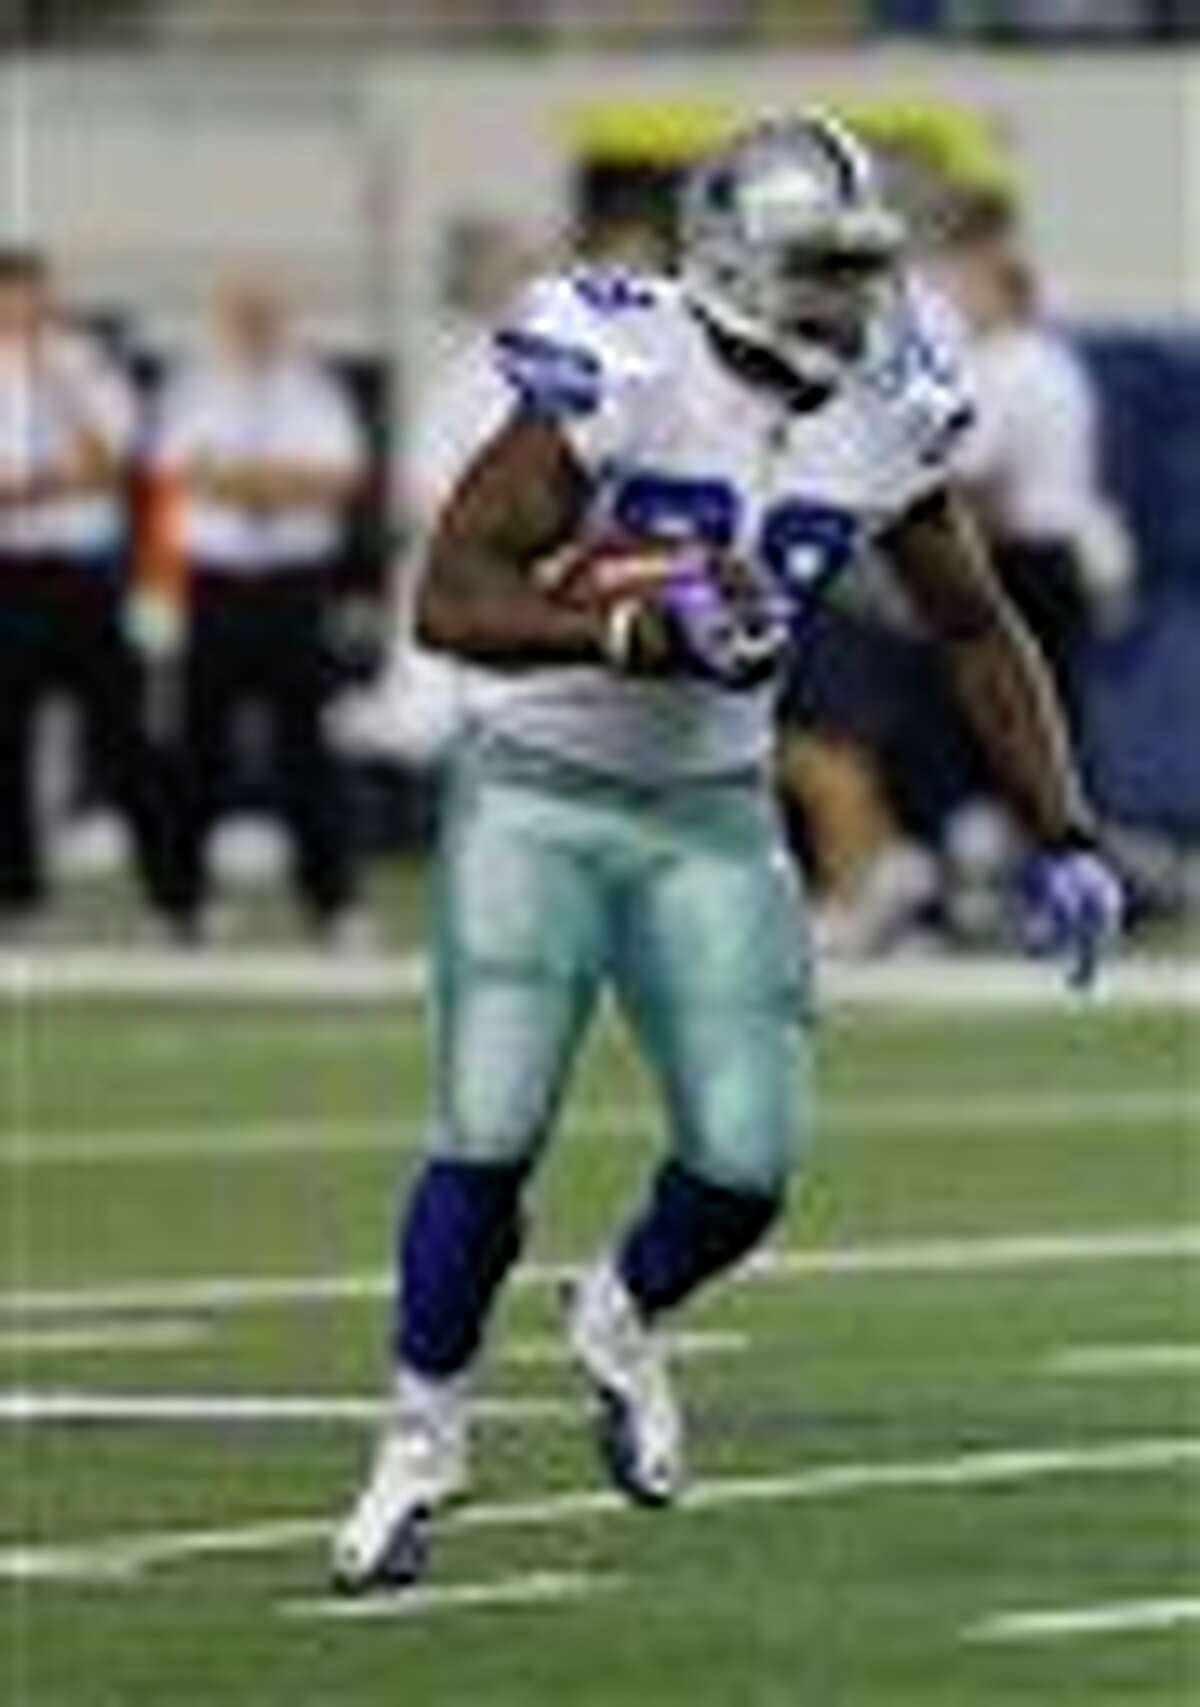 Dallas Cowboys running back Felix Jones (28) during the first half of a preseason NFL football game against the San Diego Chargers Sunday, Aug. 21, 2011, in Arlington, Texas. (AP Photo/Tim Sharp)